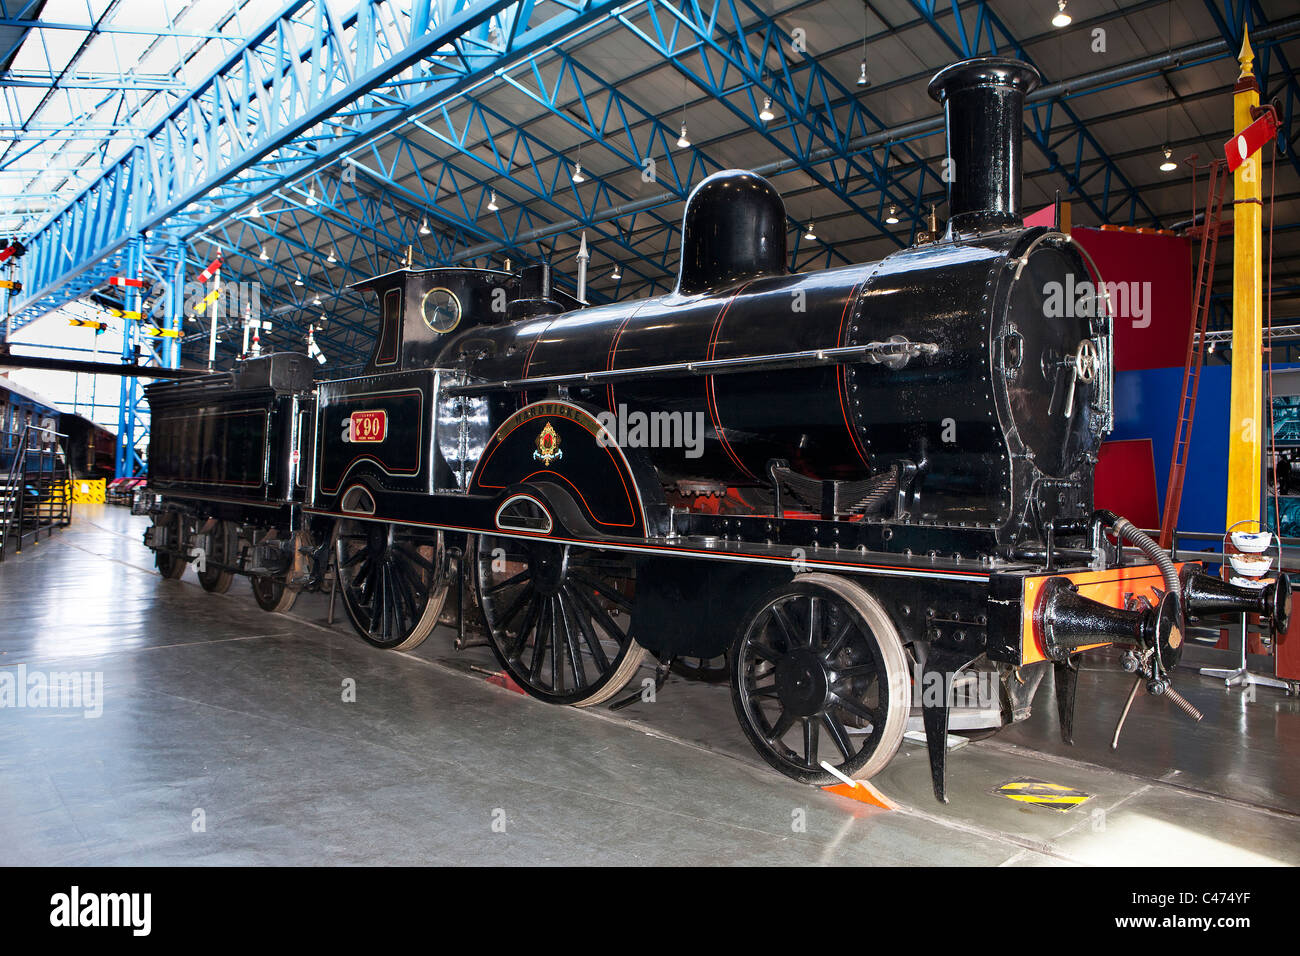 LNWR No. 790 Hardwicke locomotive displayed in the Great Hall of the National Railway Museum, York. - Stock Image